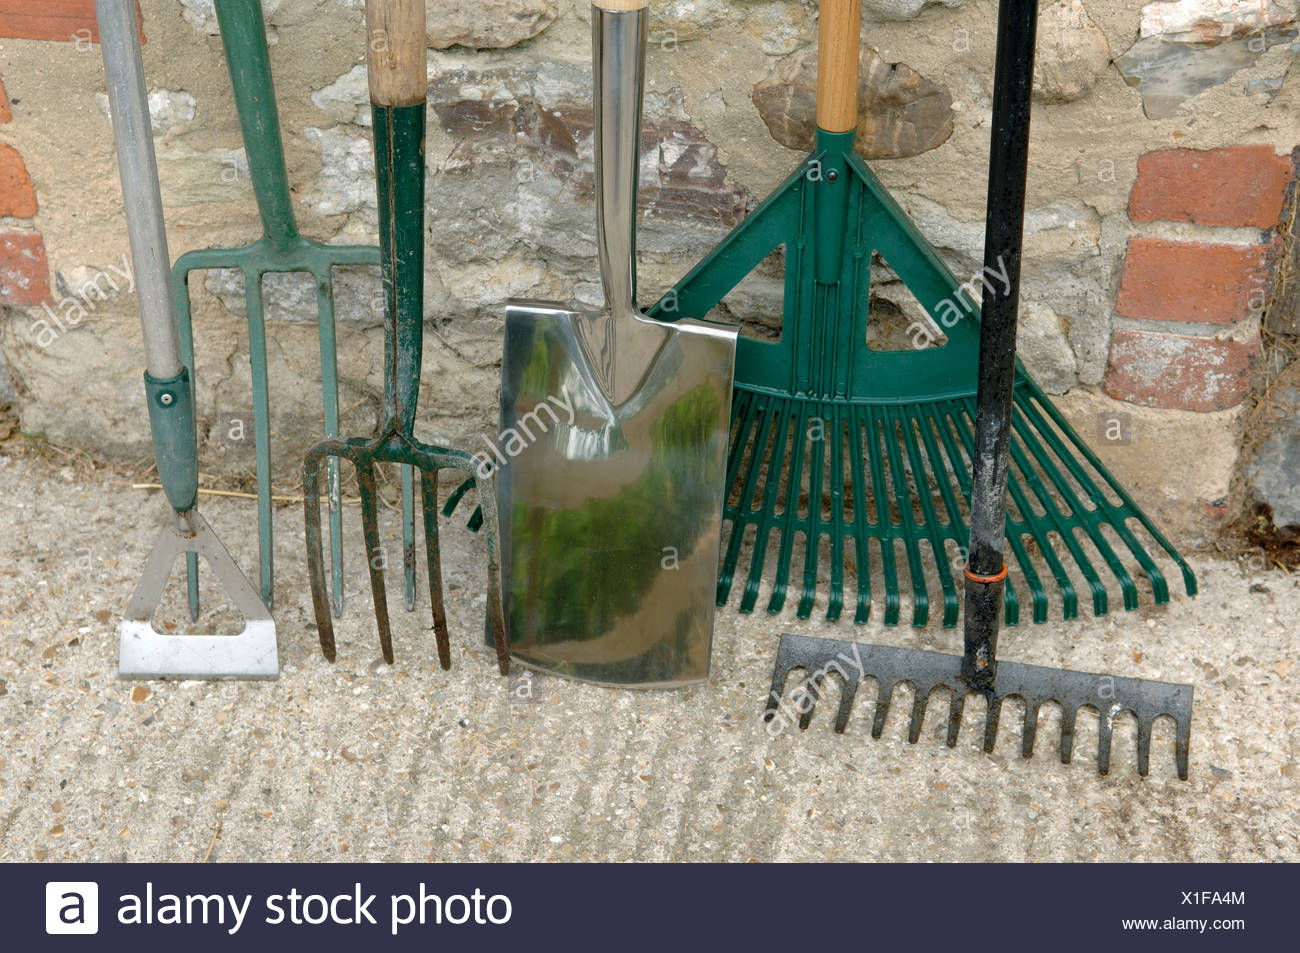 Garden tools spade hoe forks and rakes leaning against an outhouse wall - Stock Image